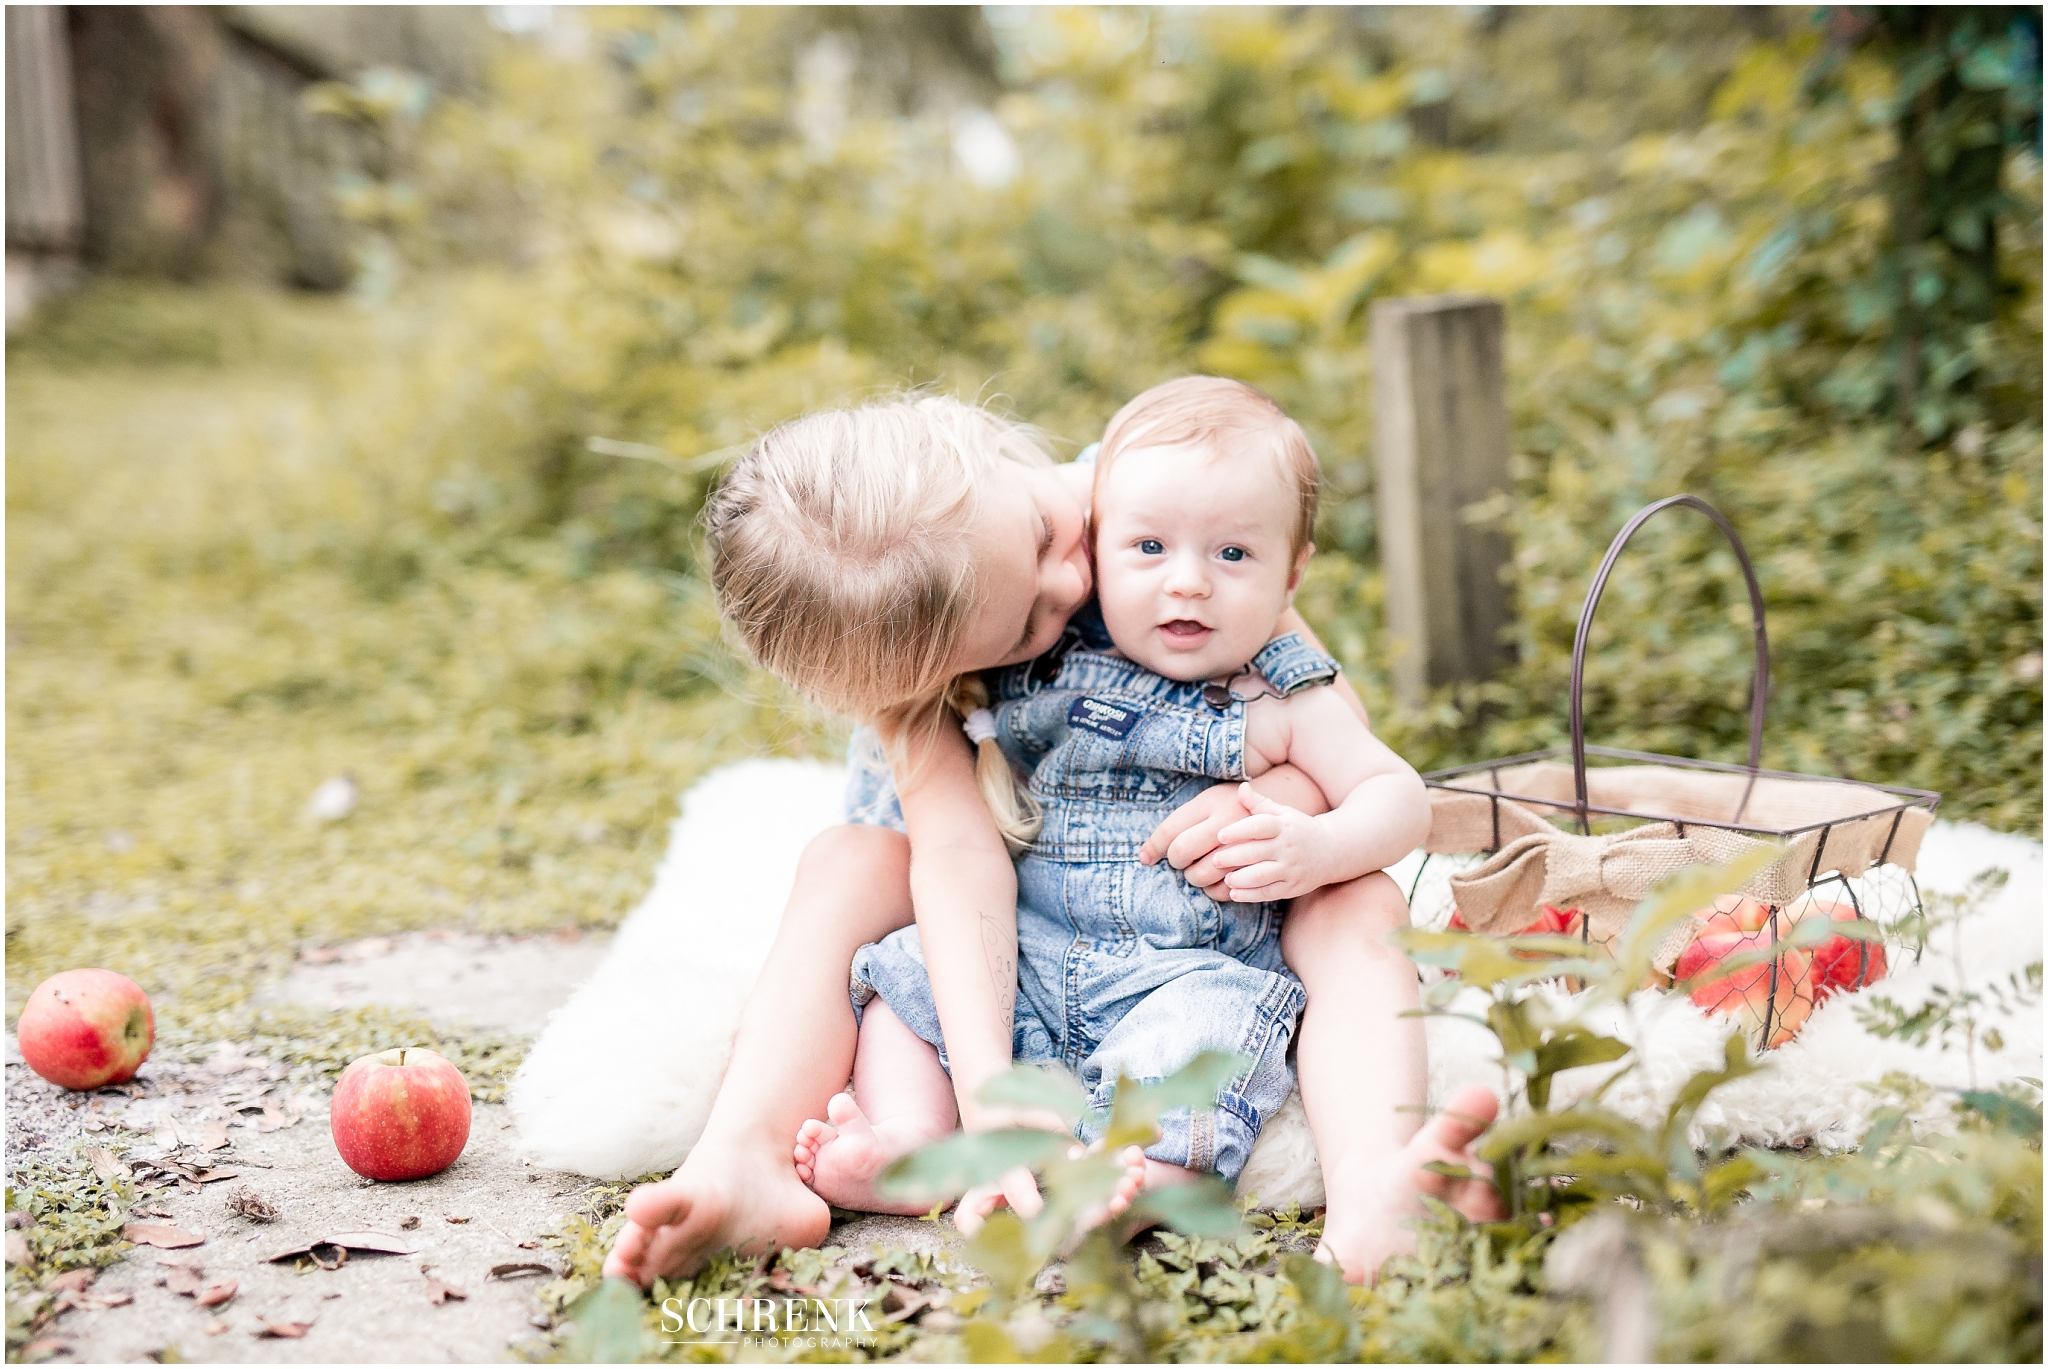 Schrenk Photography Ovievo, Orlando, and Winter Park Family and Newborn Photographer 43